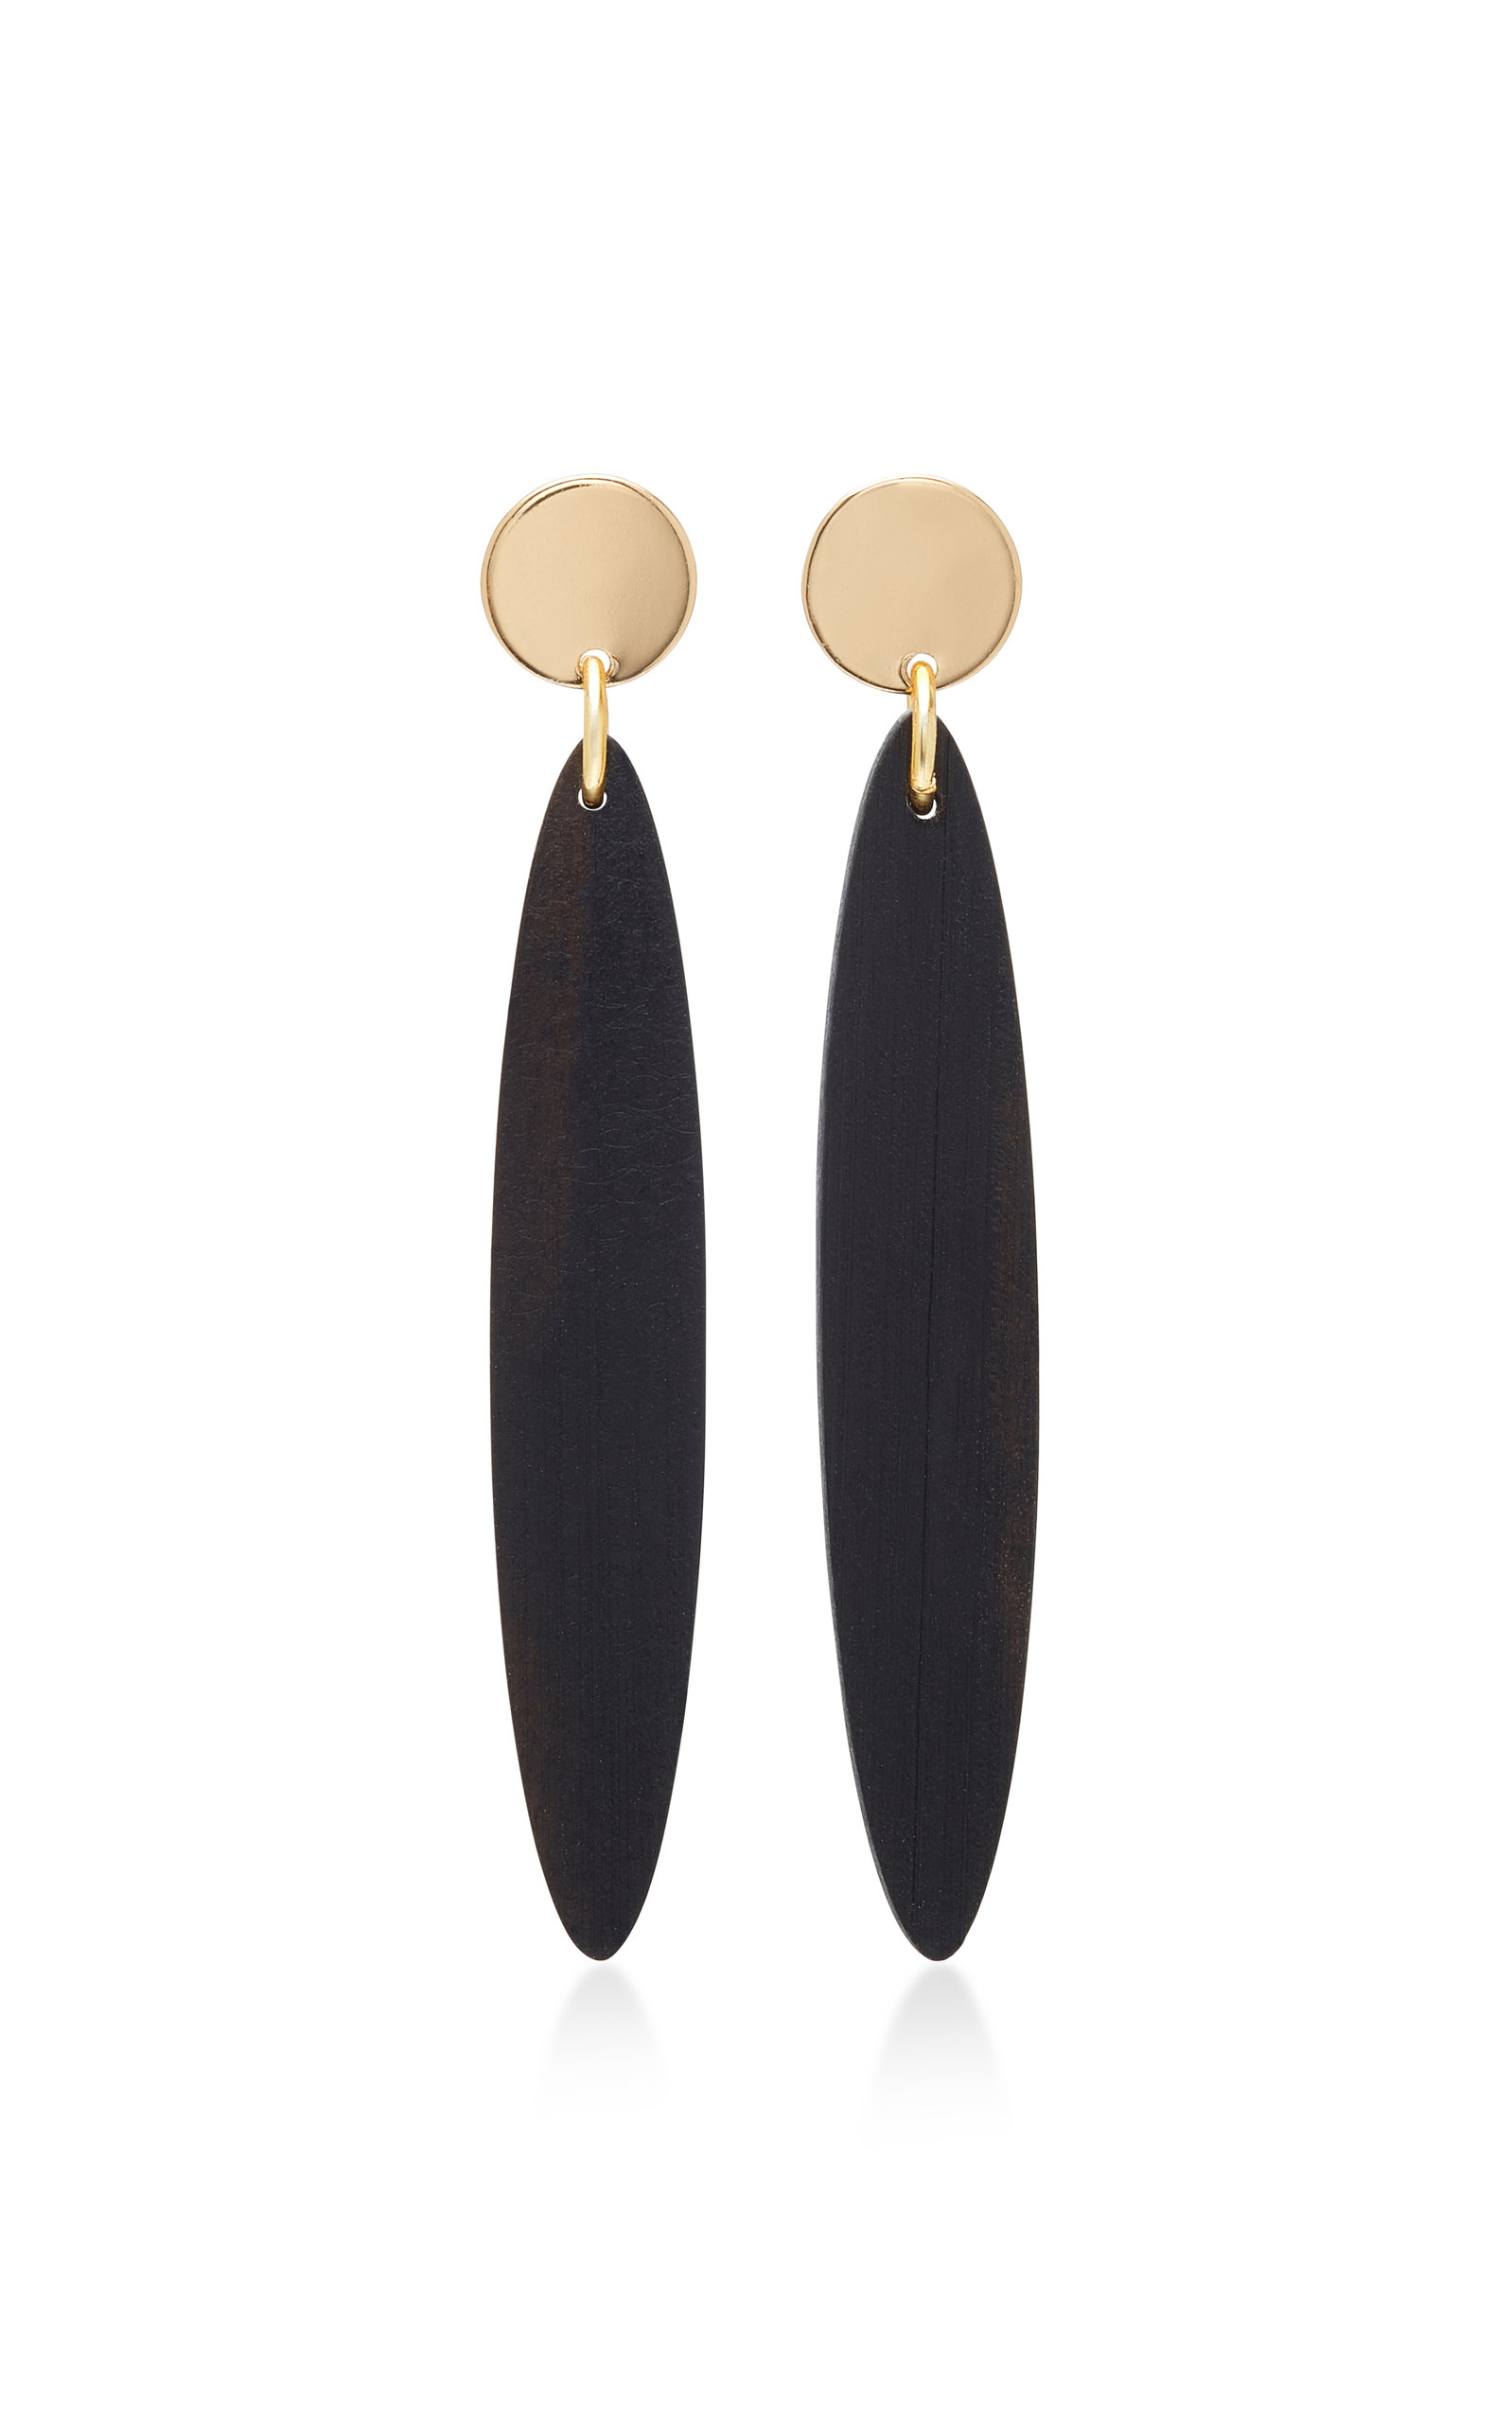 The Navona Gold-Plated Ebony and Wood Earrings Sophie Monet icrpvLBgR